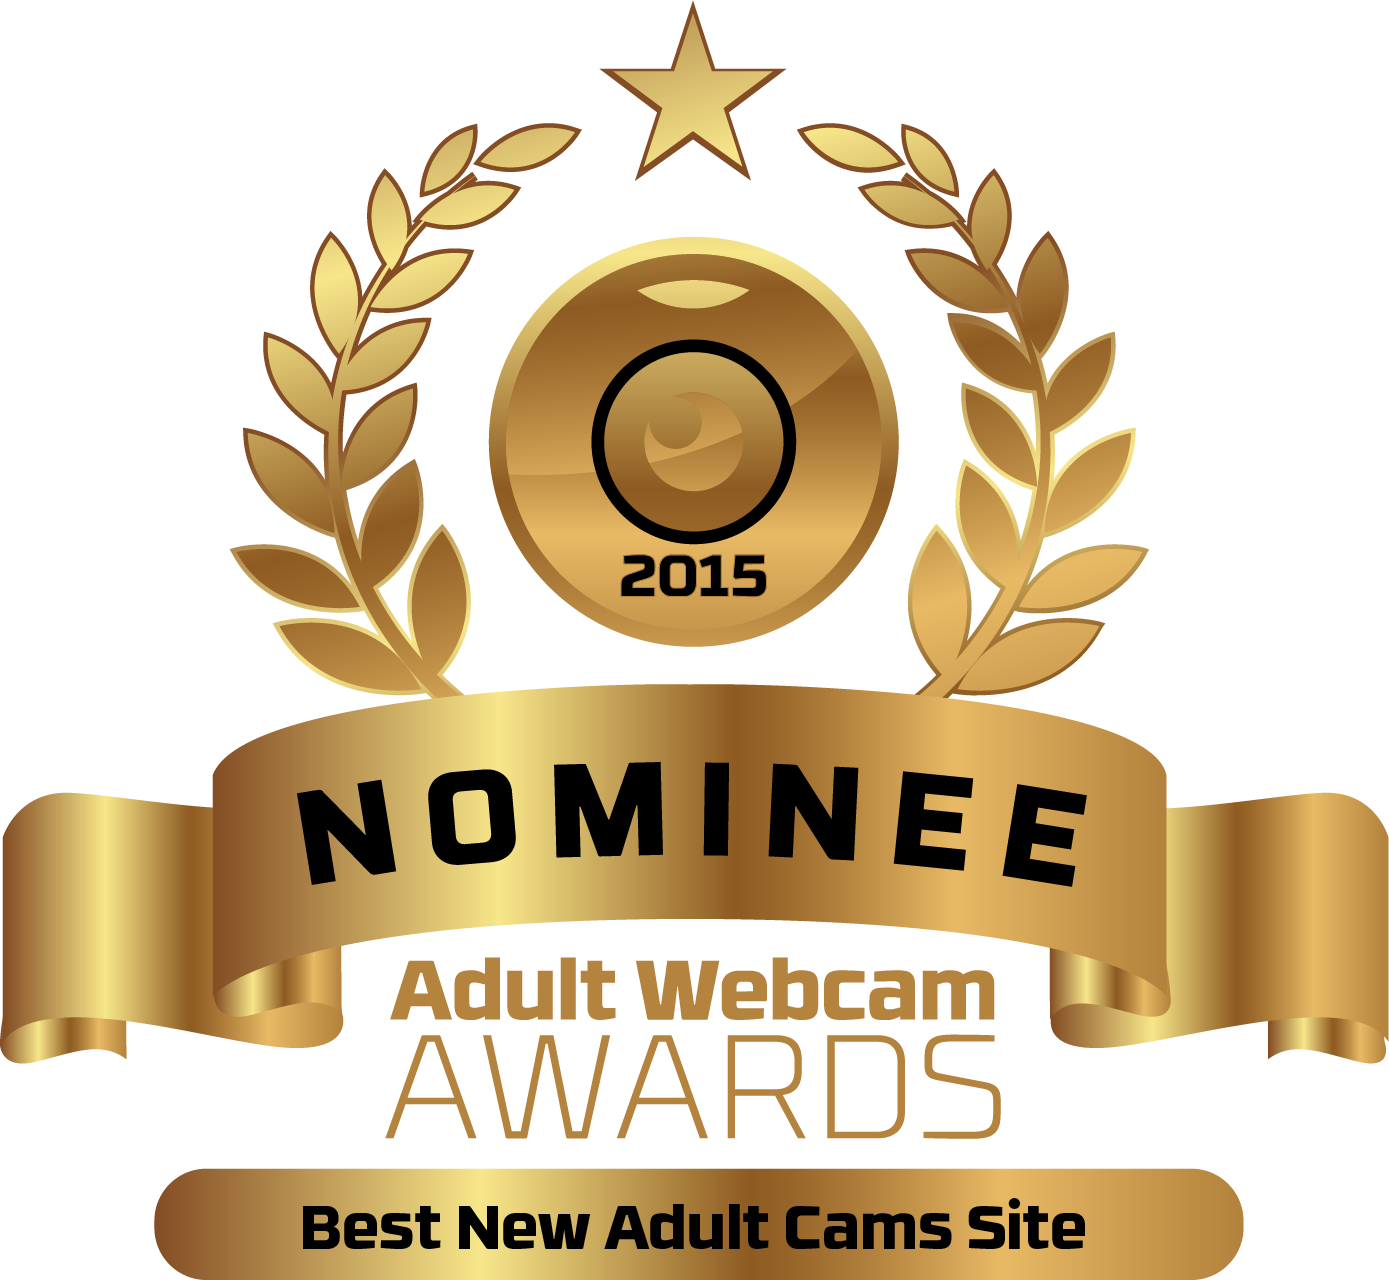 Best New Adult Cam Site Nominee